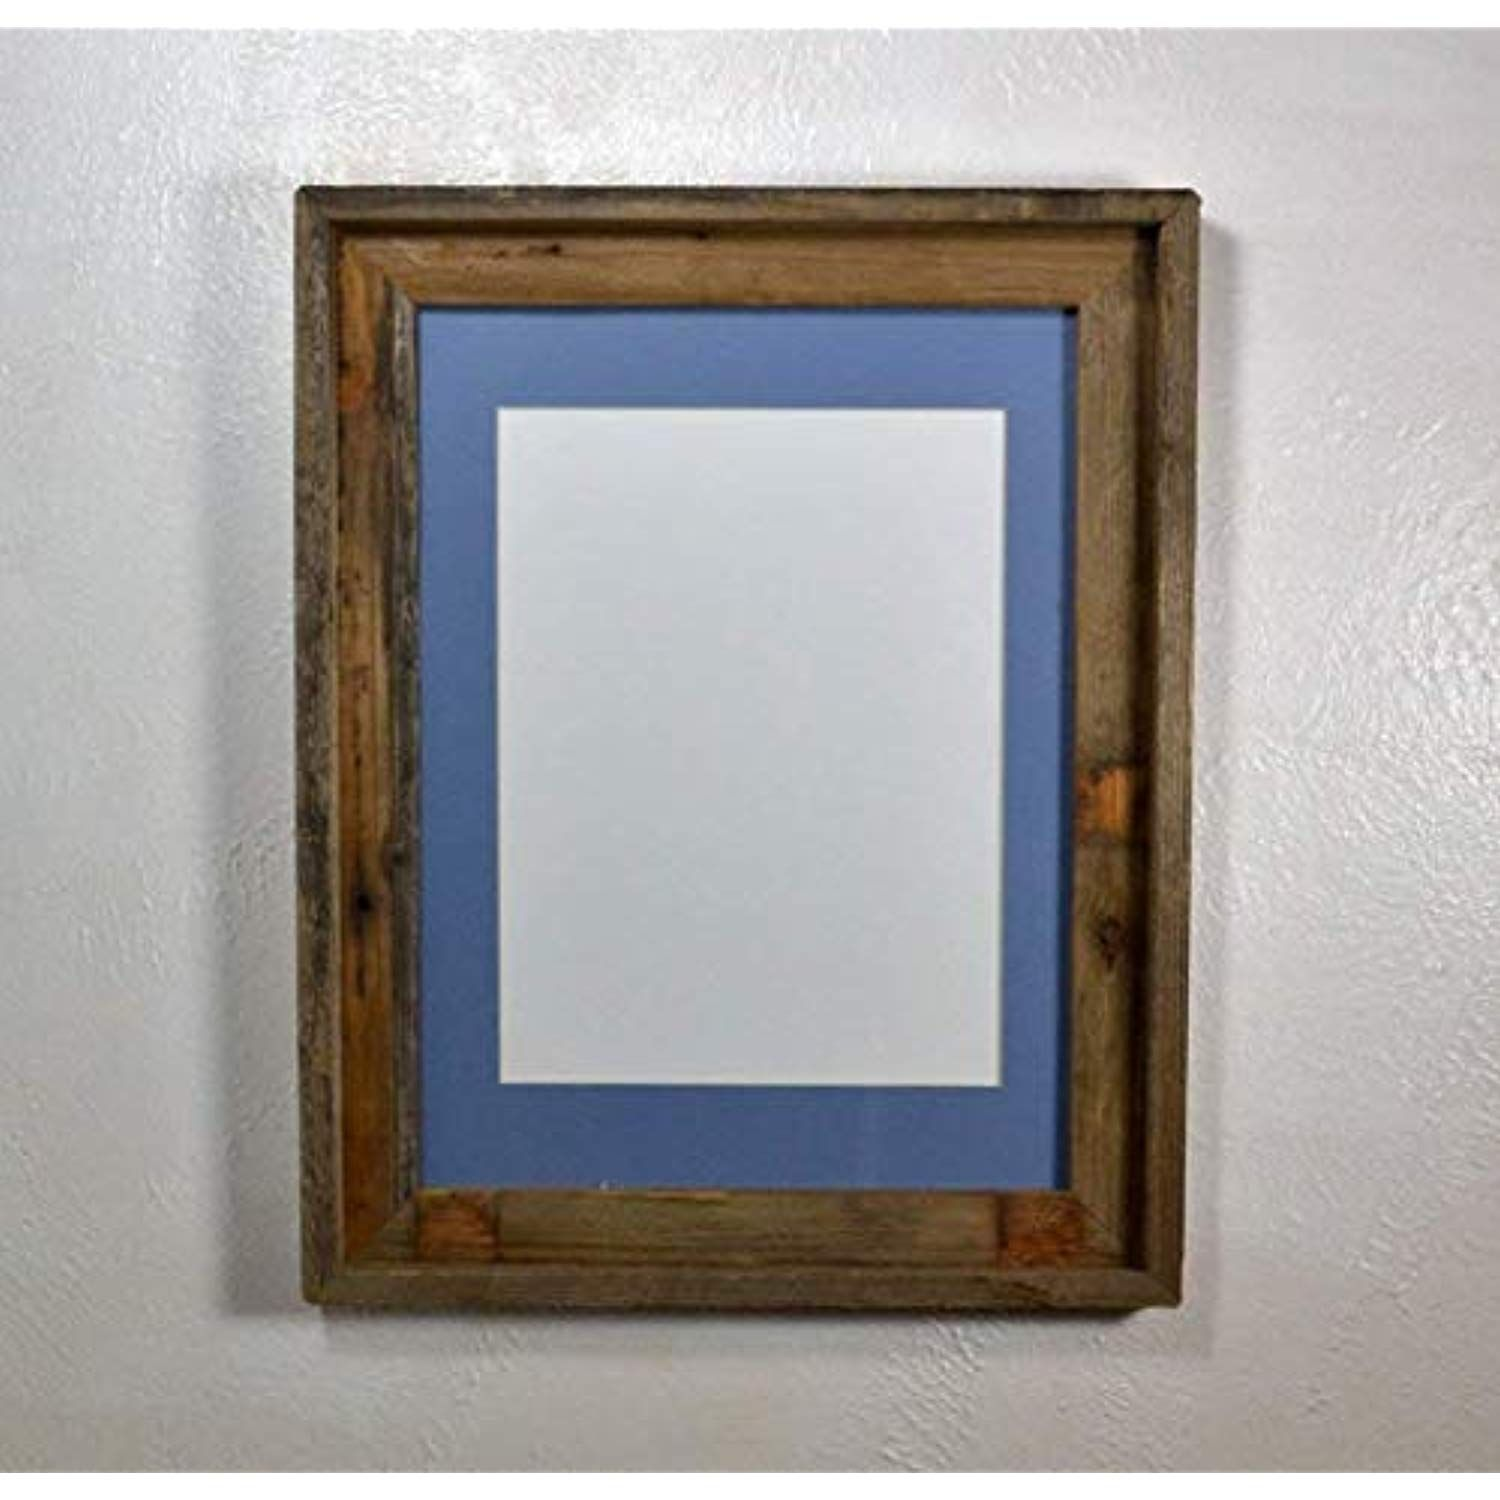 Brown Picture Frame Reclaimed Wood Wall Hung With 8x12 Light Blue Mat And Glass 12x16 Witho Rustic Picture Frames Reclaimed Wood Picture Frames Rustic Pictures